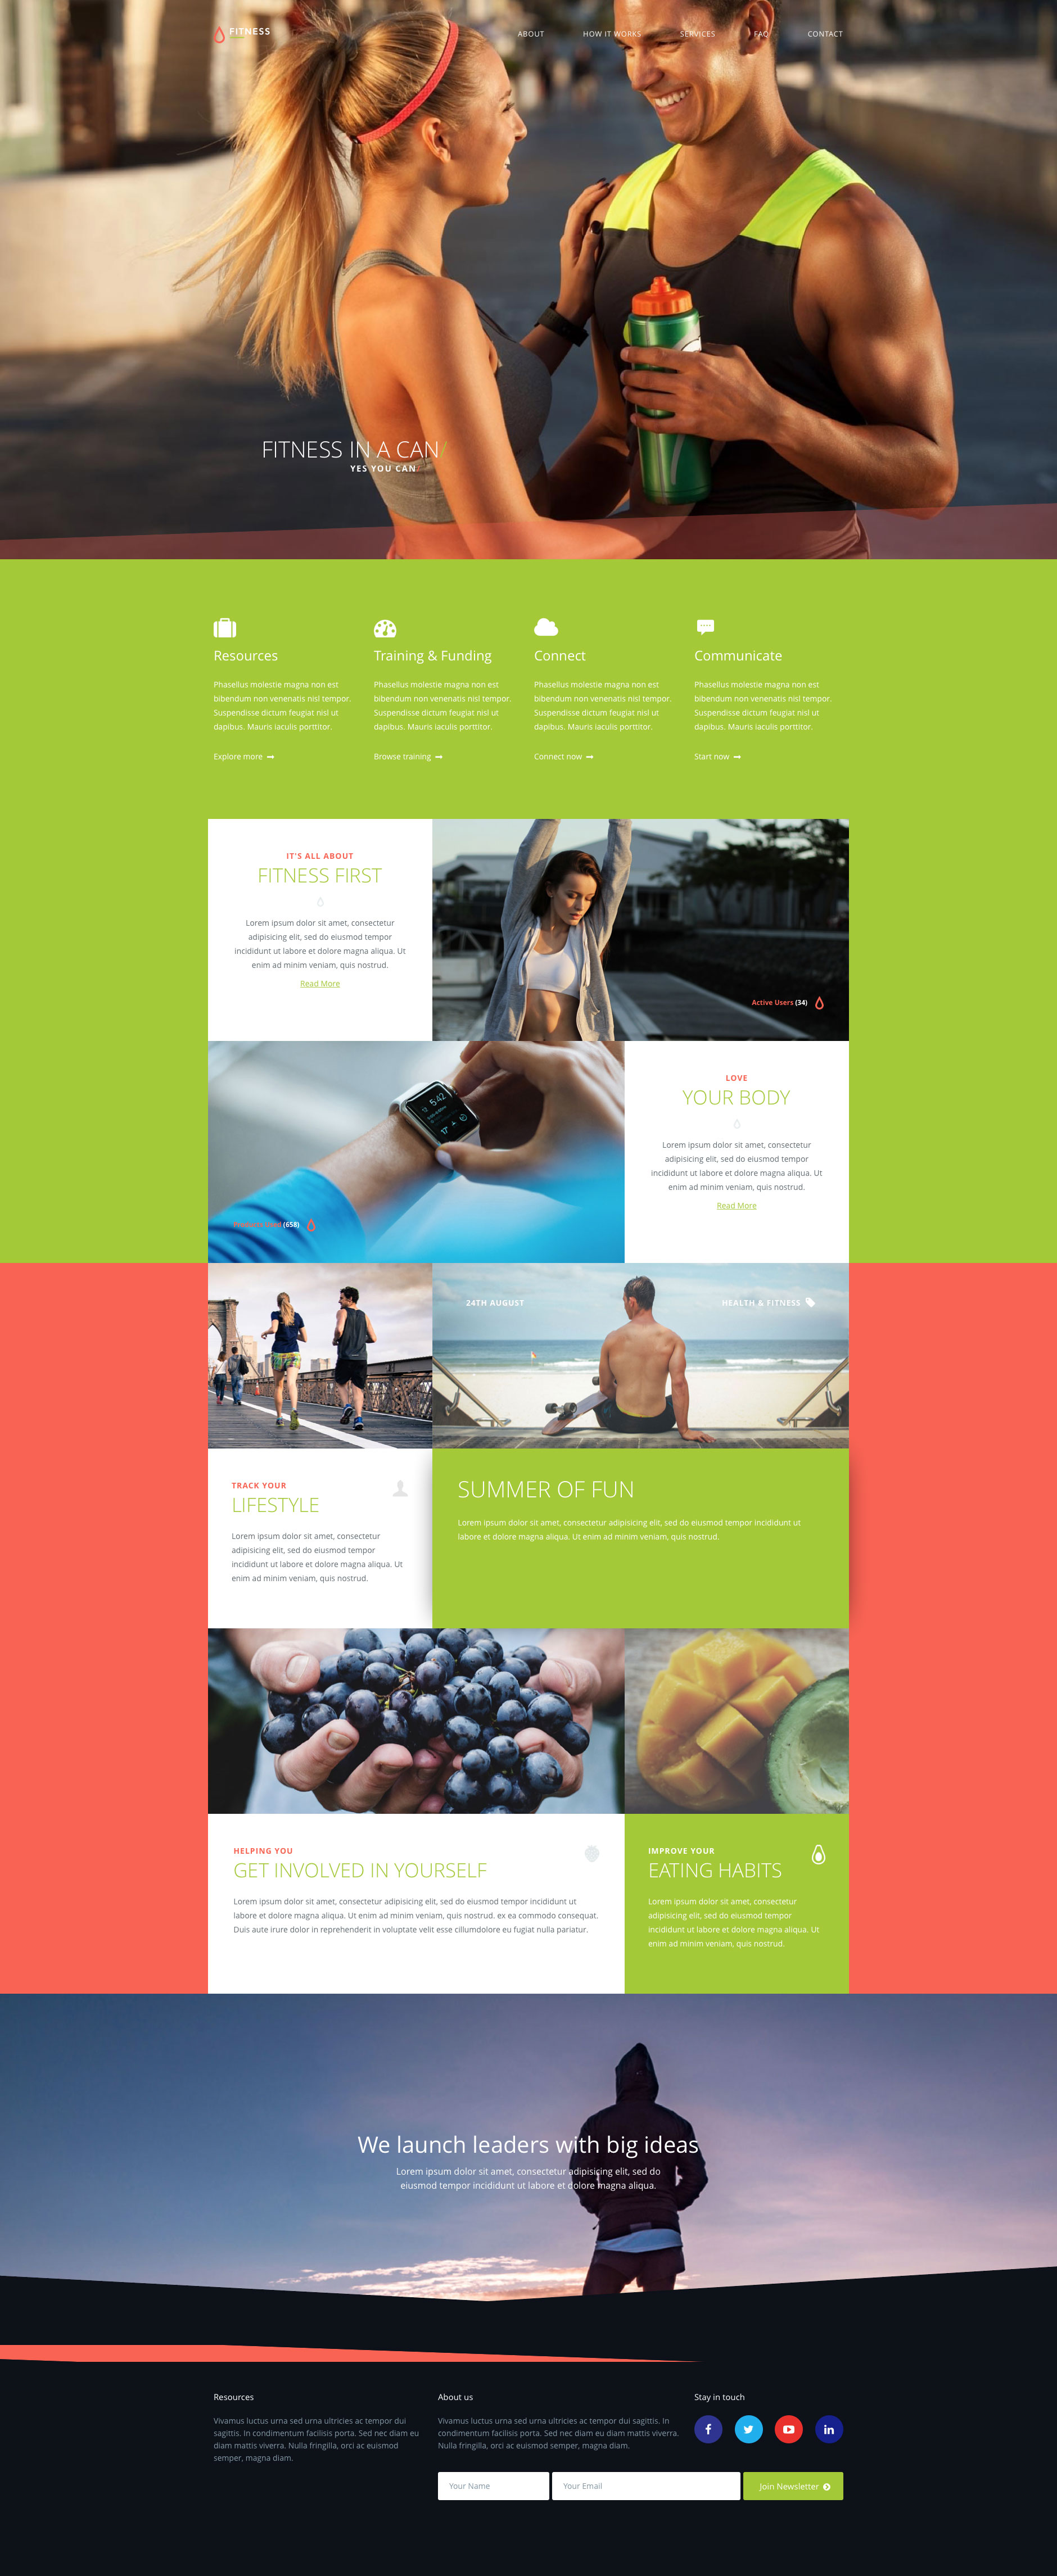 Fitness is a bright and vibrant free responsive HTML5 website template written in Bootstrap 4, and serves as a fantastic starting point to your next website project.